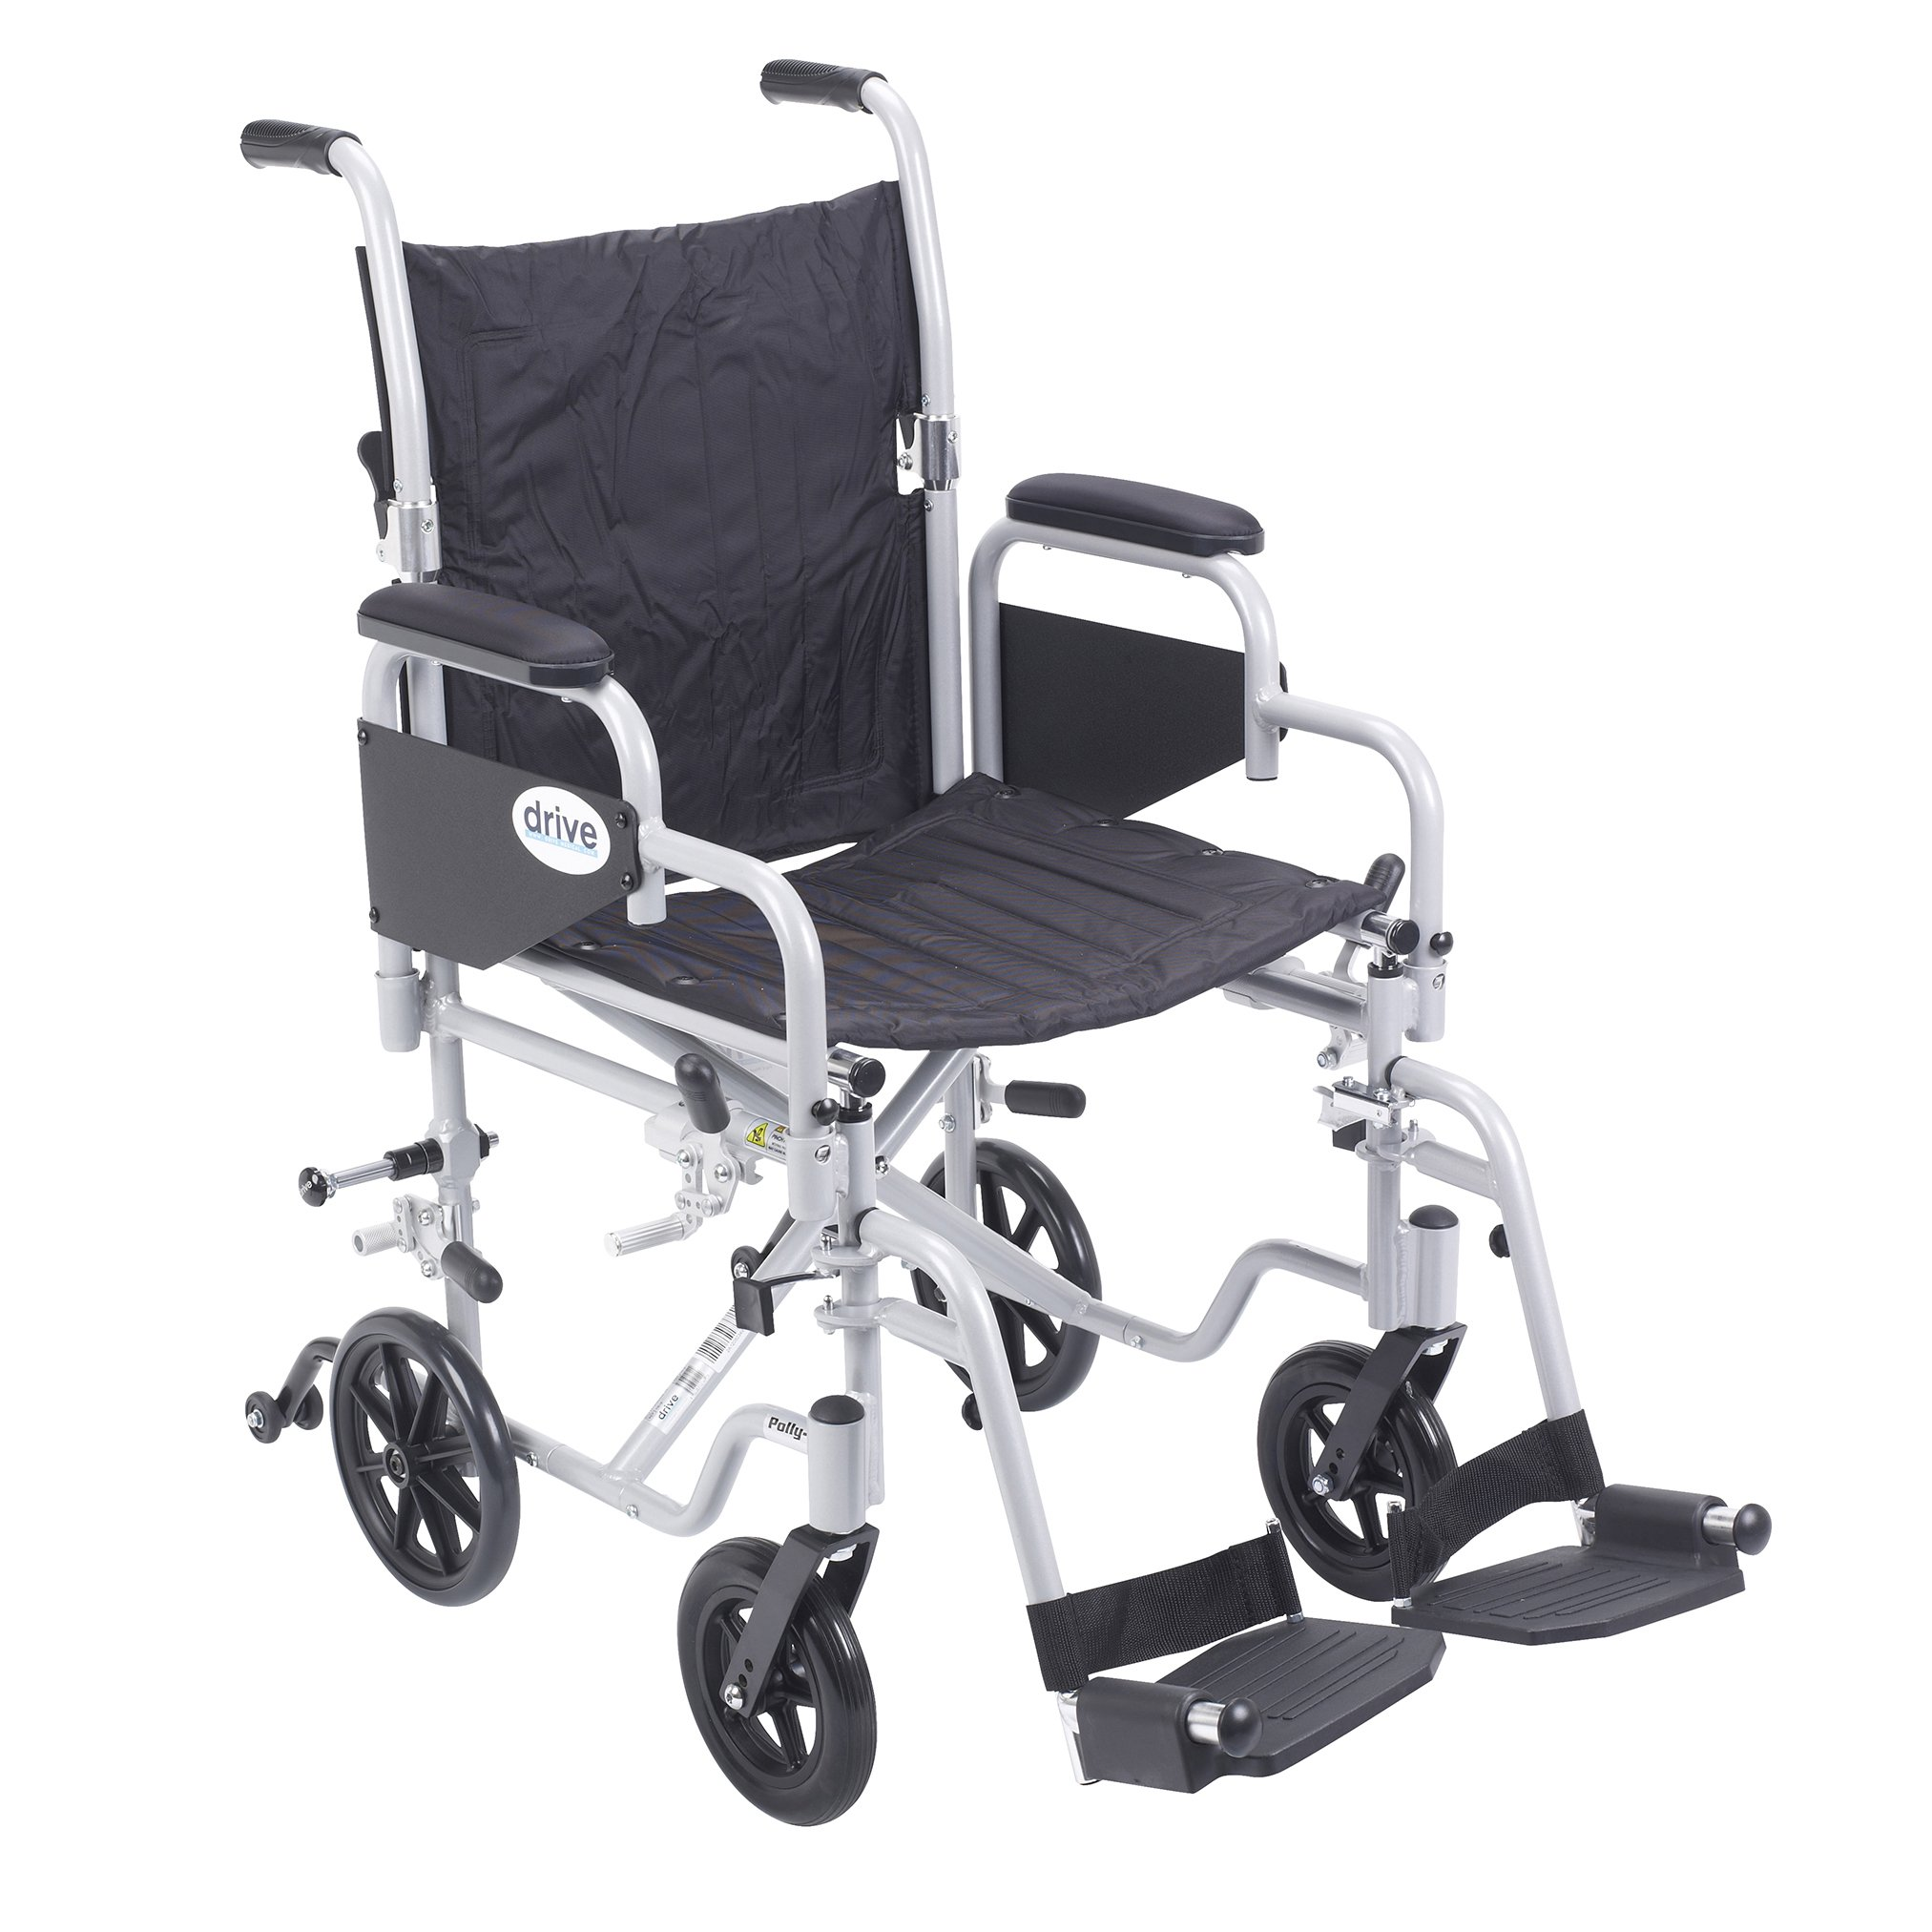 Drive Medical Poly Fly Light Weight Transport Chair Wheelchair with Swing-Away Footrest, Silver, 18""